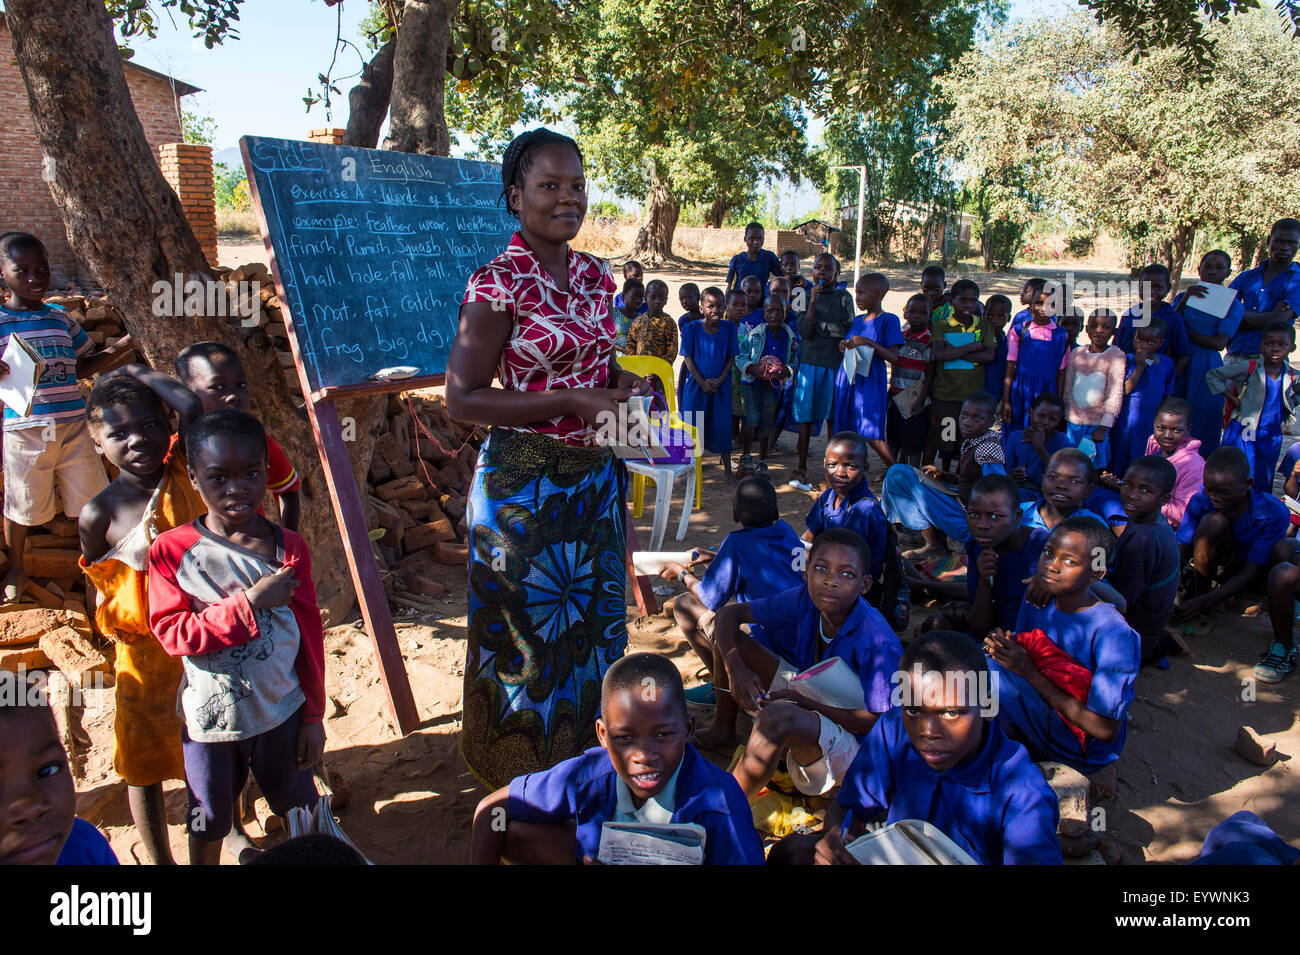 Primary school on a dusty street with many children, Liwonde National Park, Malawi, Africa - Stock Image